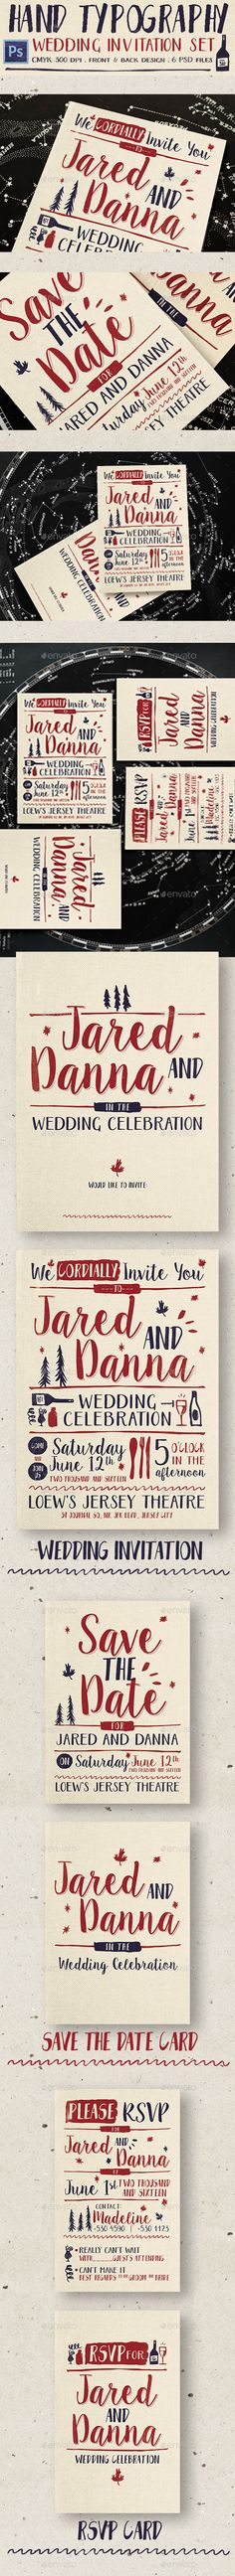 wedding invitation design psd%0A Resume Covering Letter Template